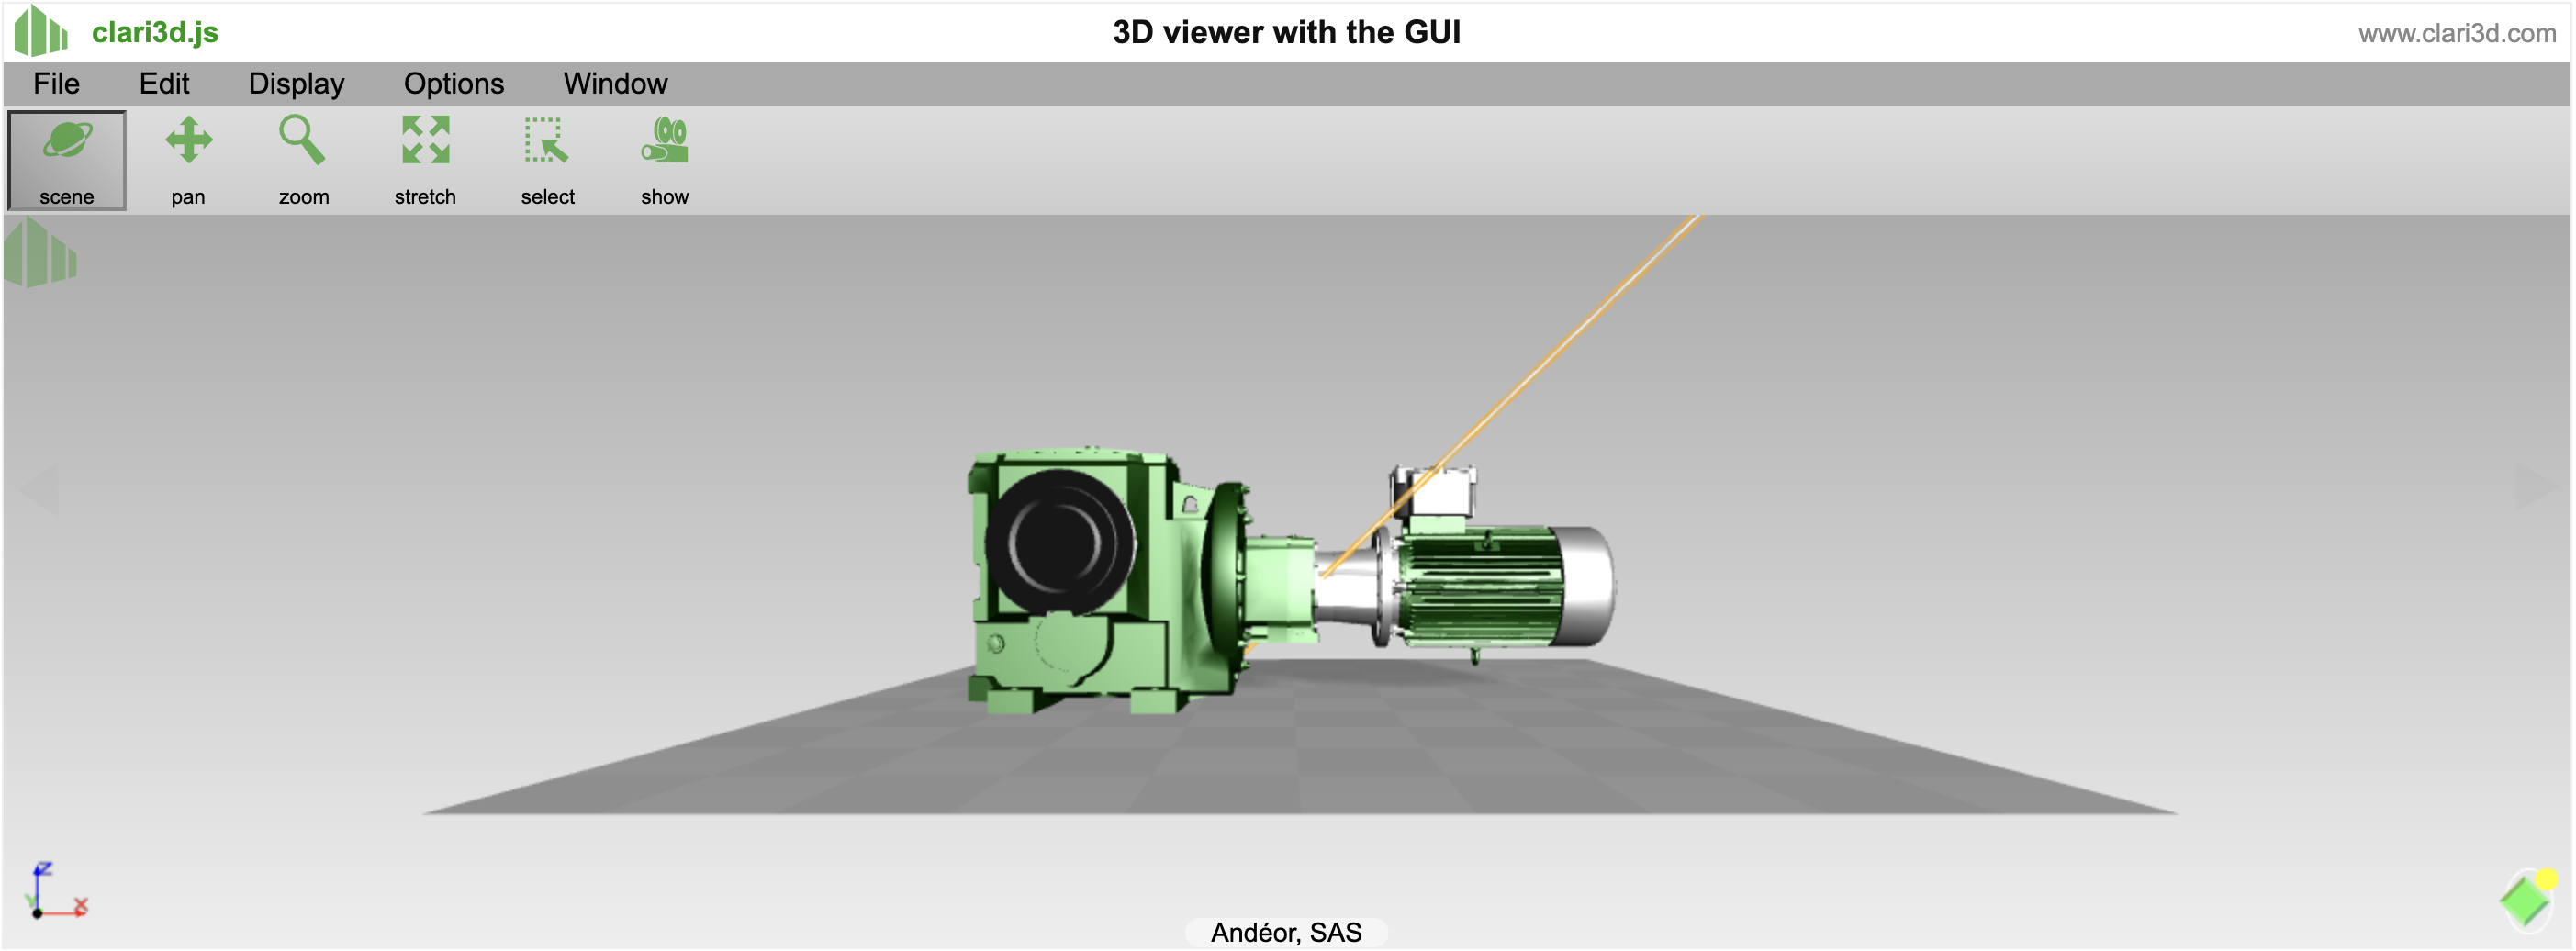 Free 3D CAD viewer | STL Step Wavefront 3DStudio Cloud WebGL - Clari3D